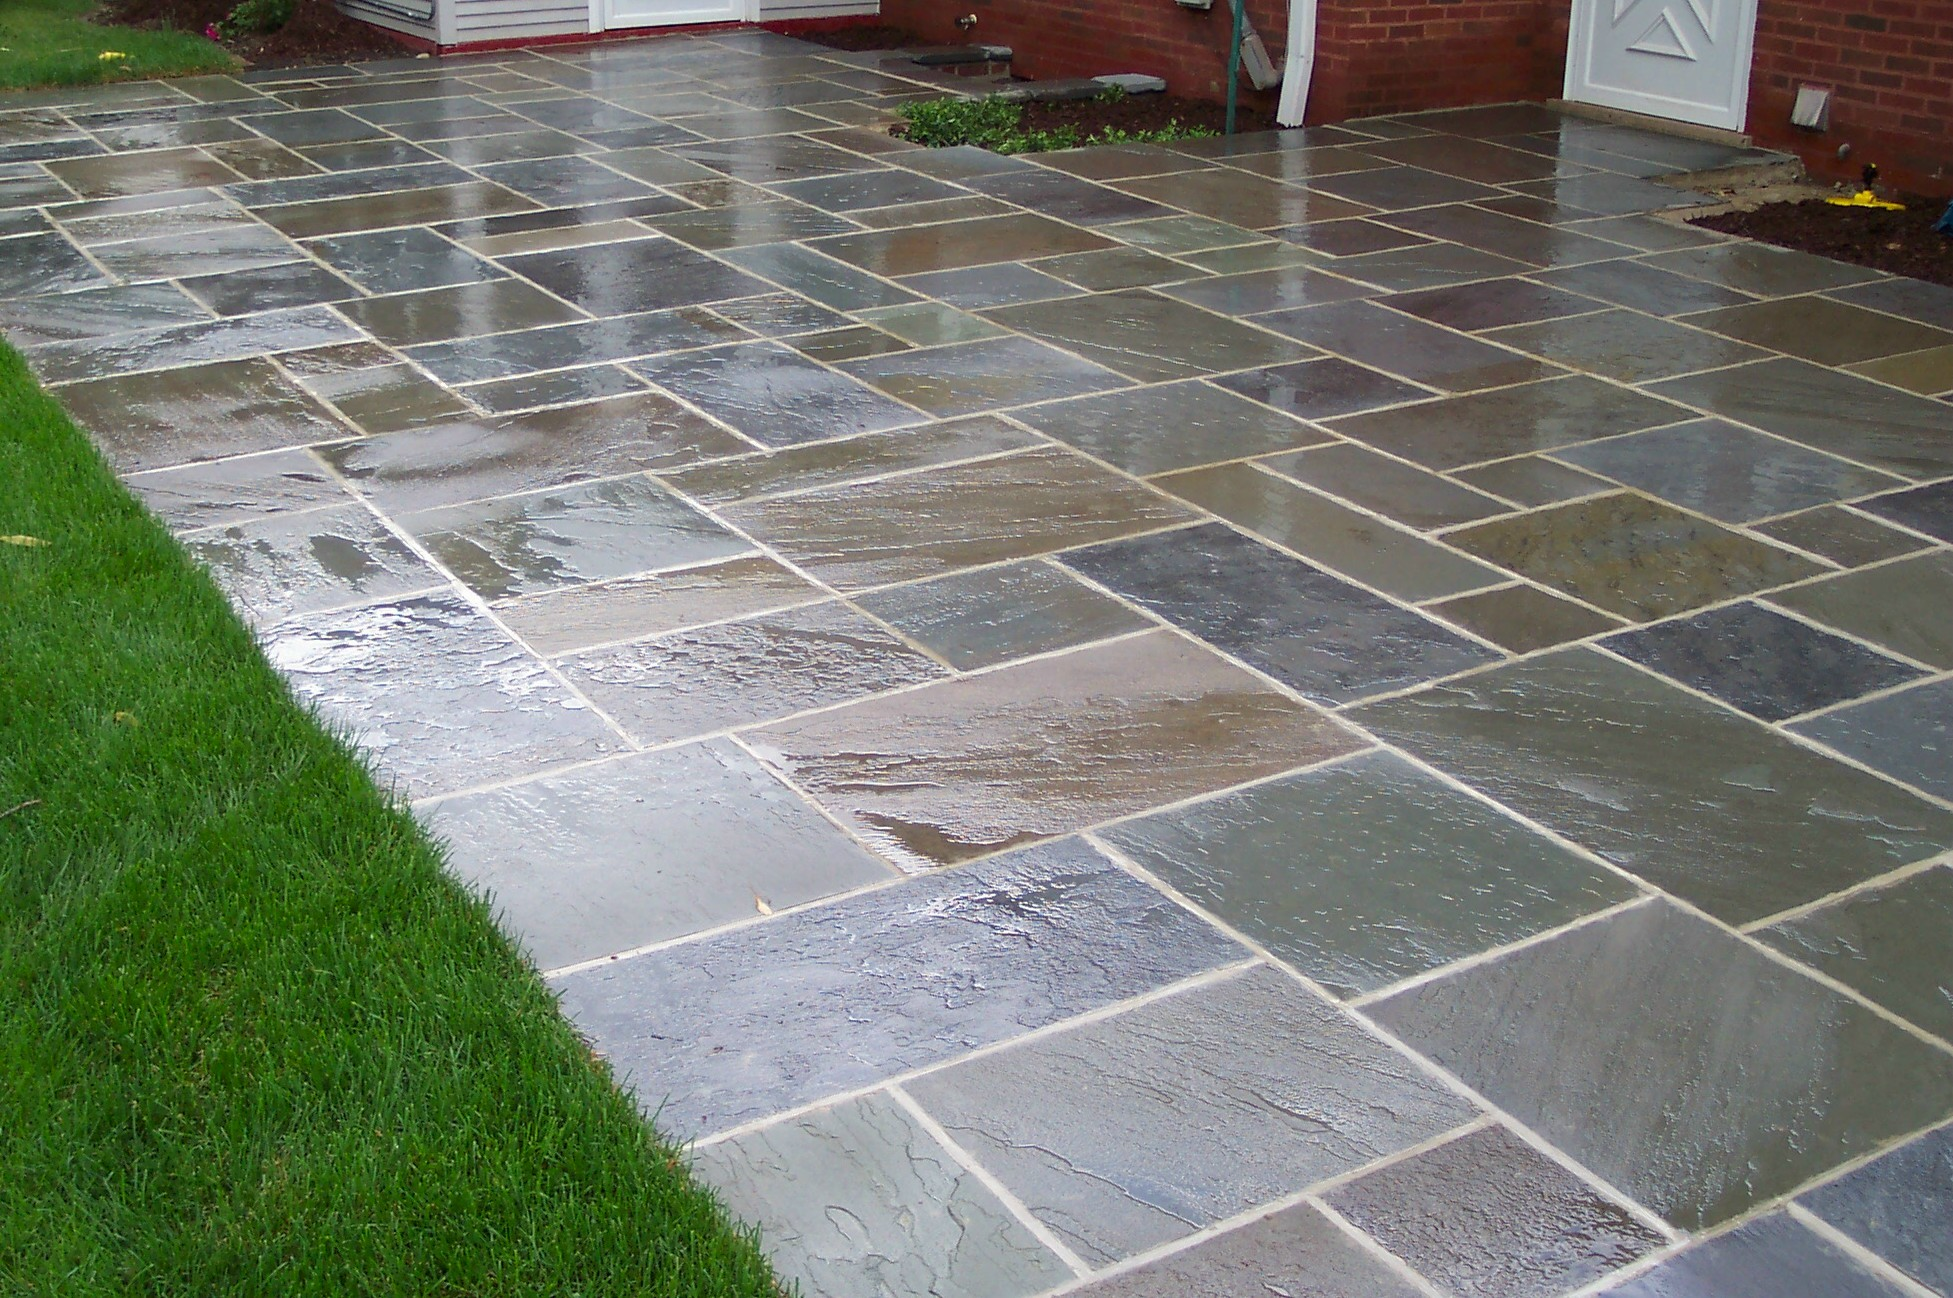 Bluestone patio pavers patio design ideas - Paver designs for backyard ...